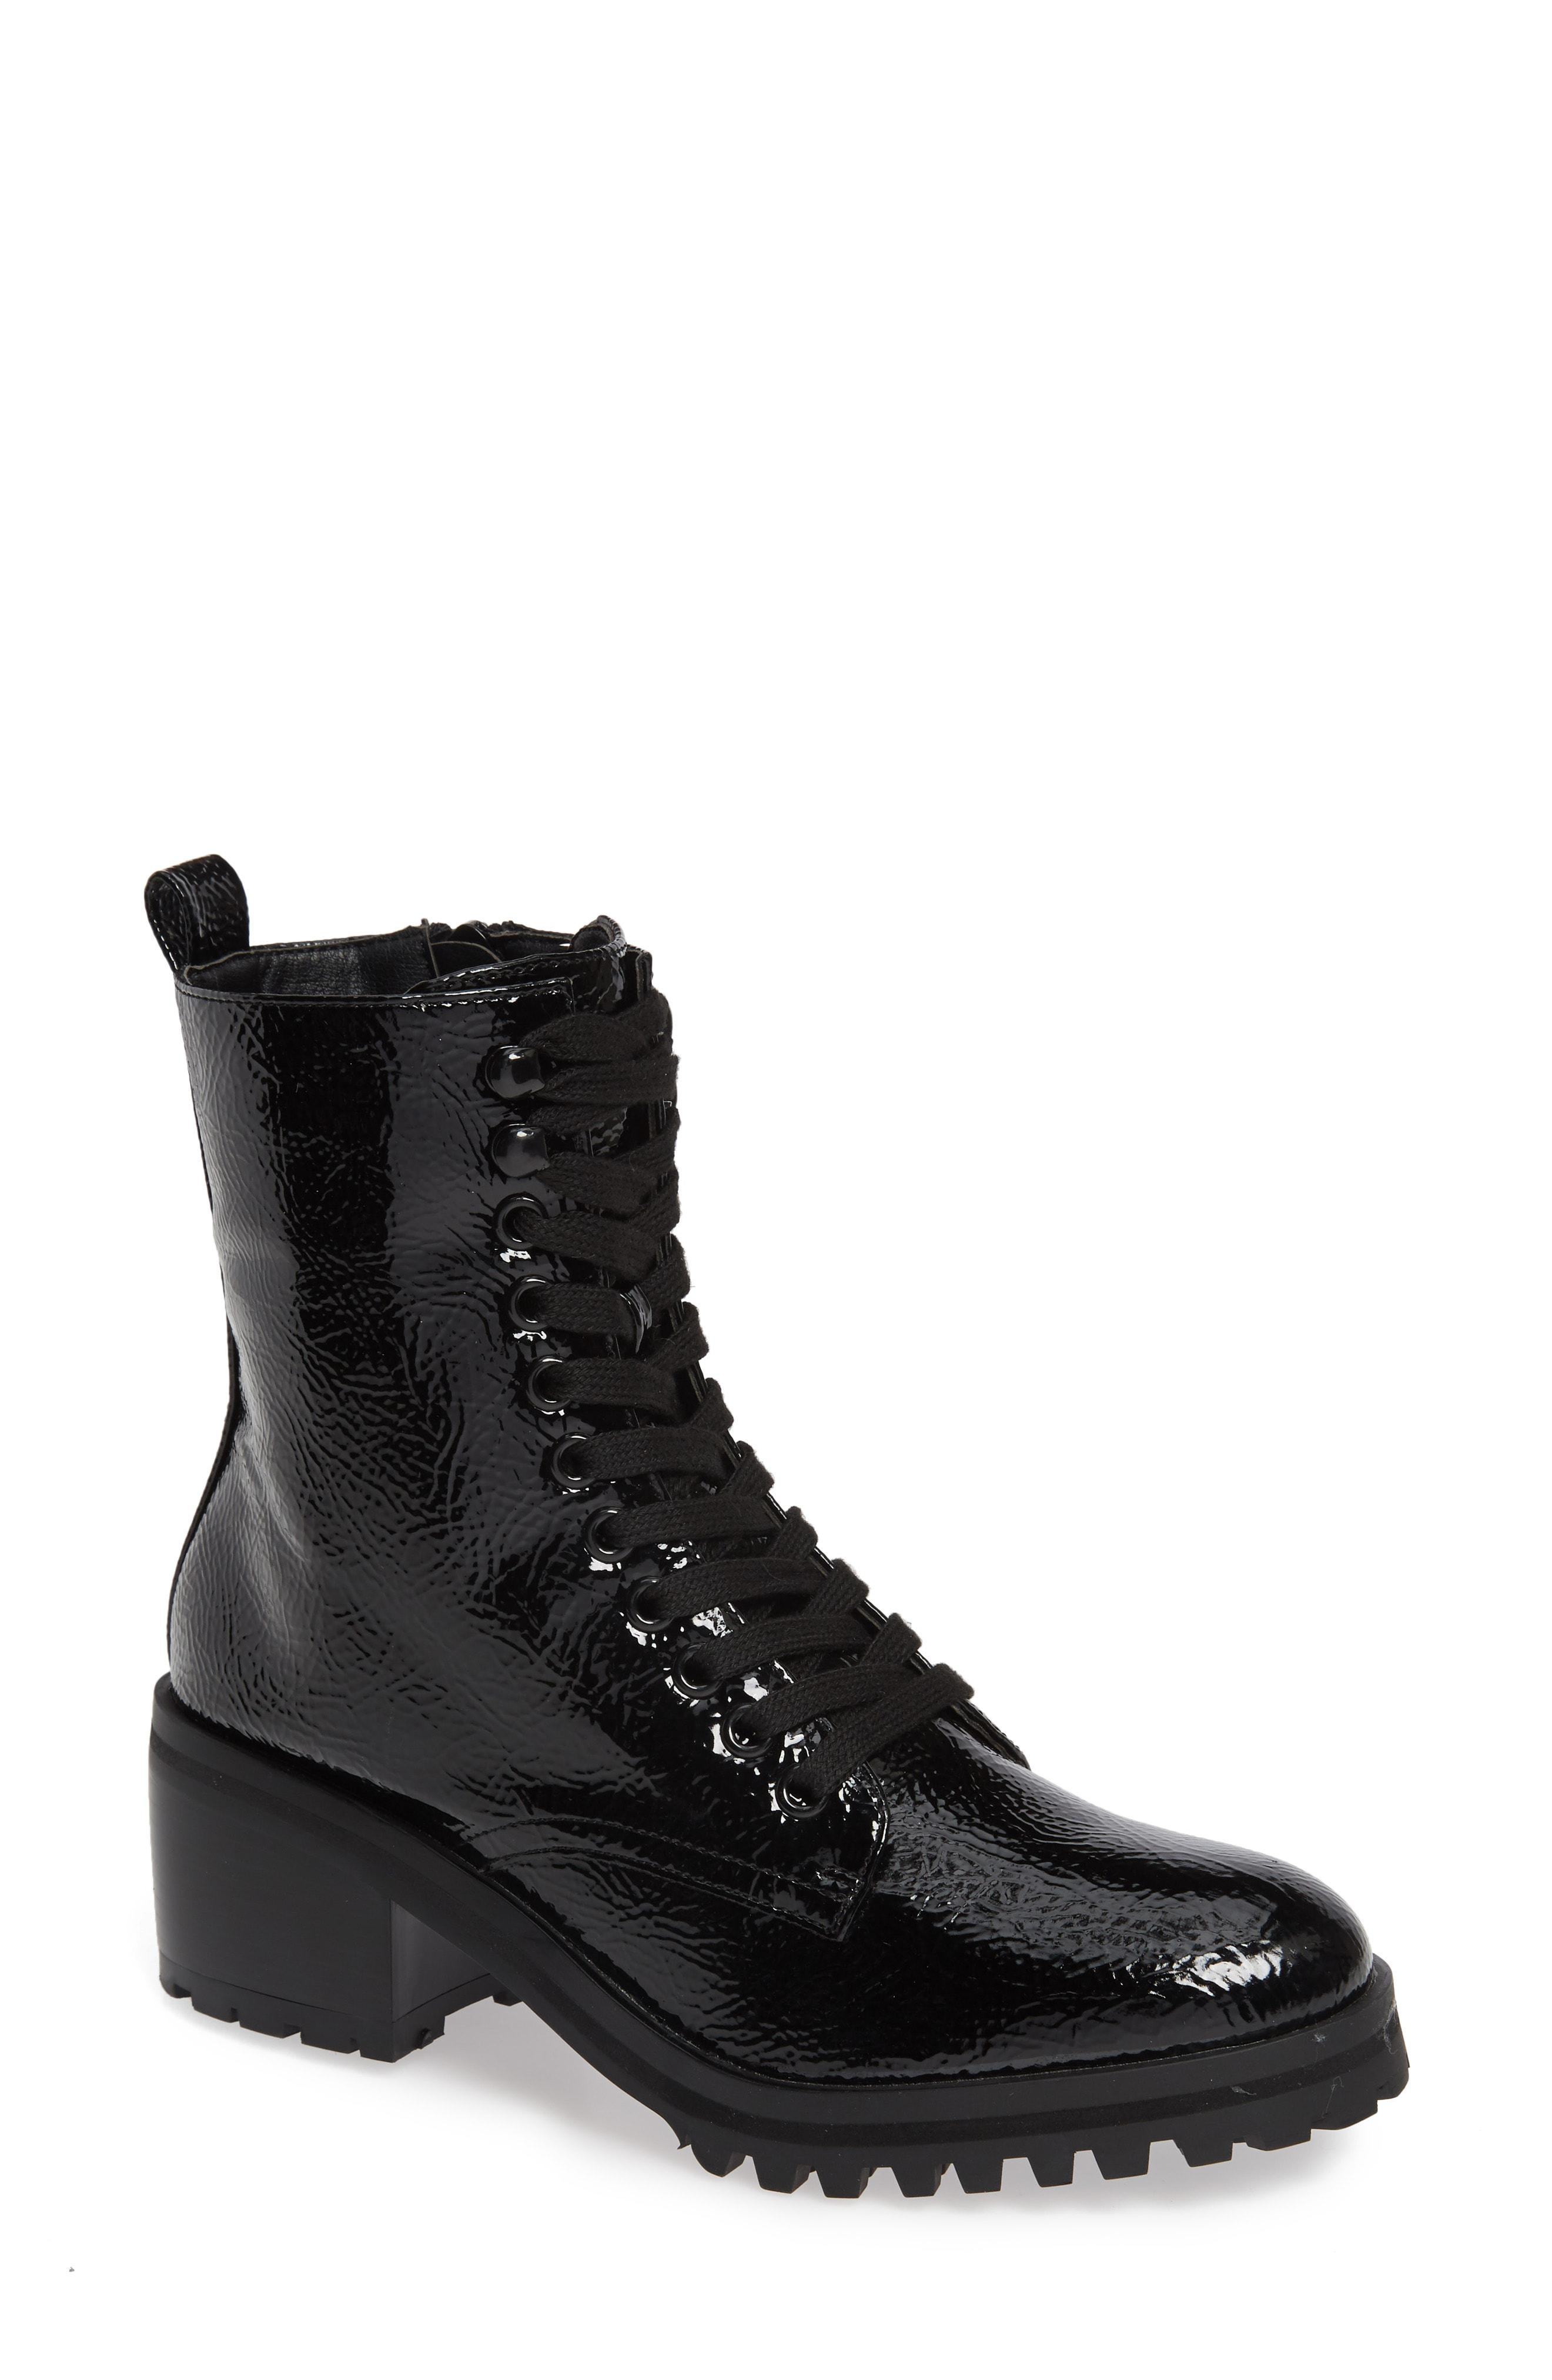 TOPSHOP Brazil Lace-up Boot in Black - Lyst